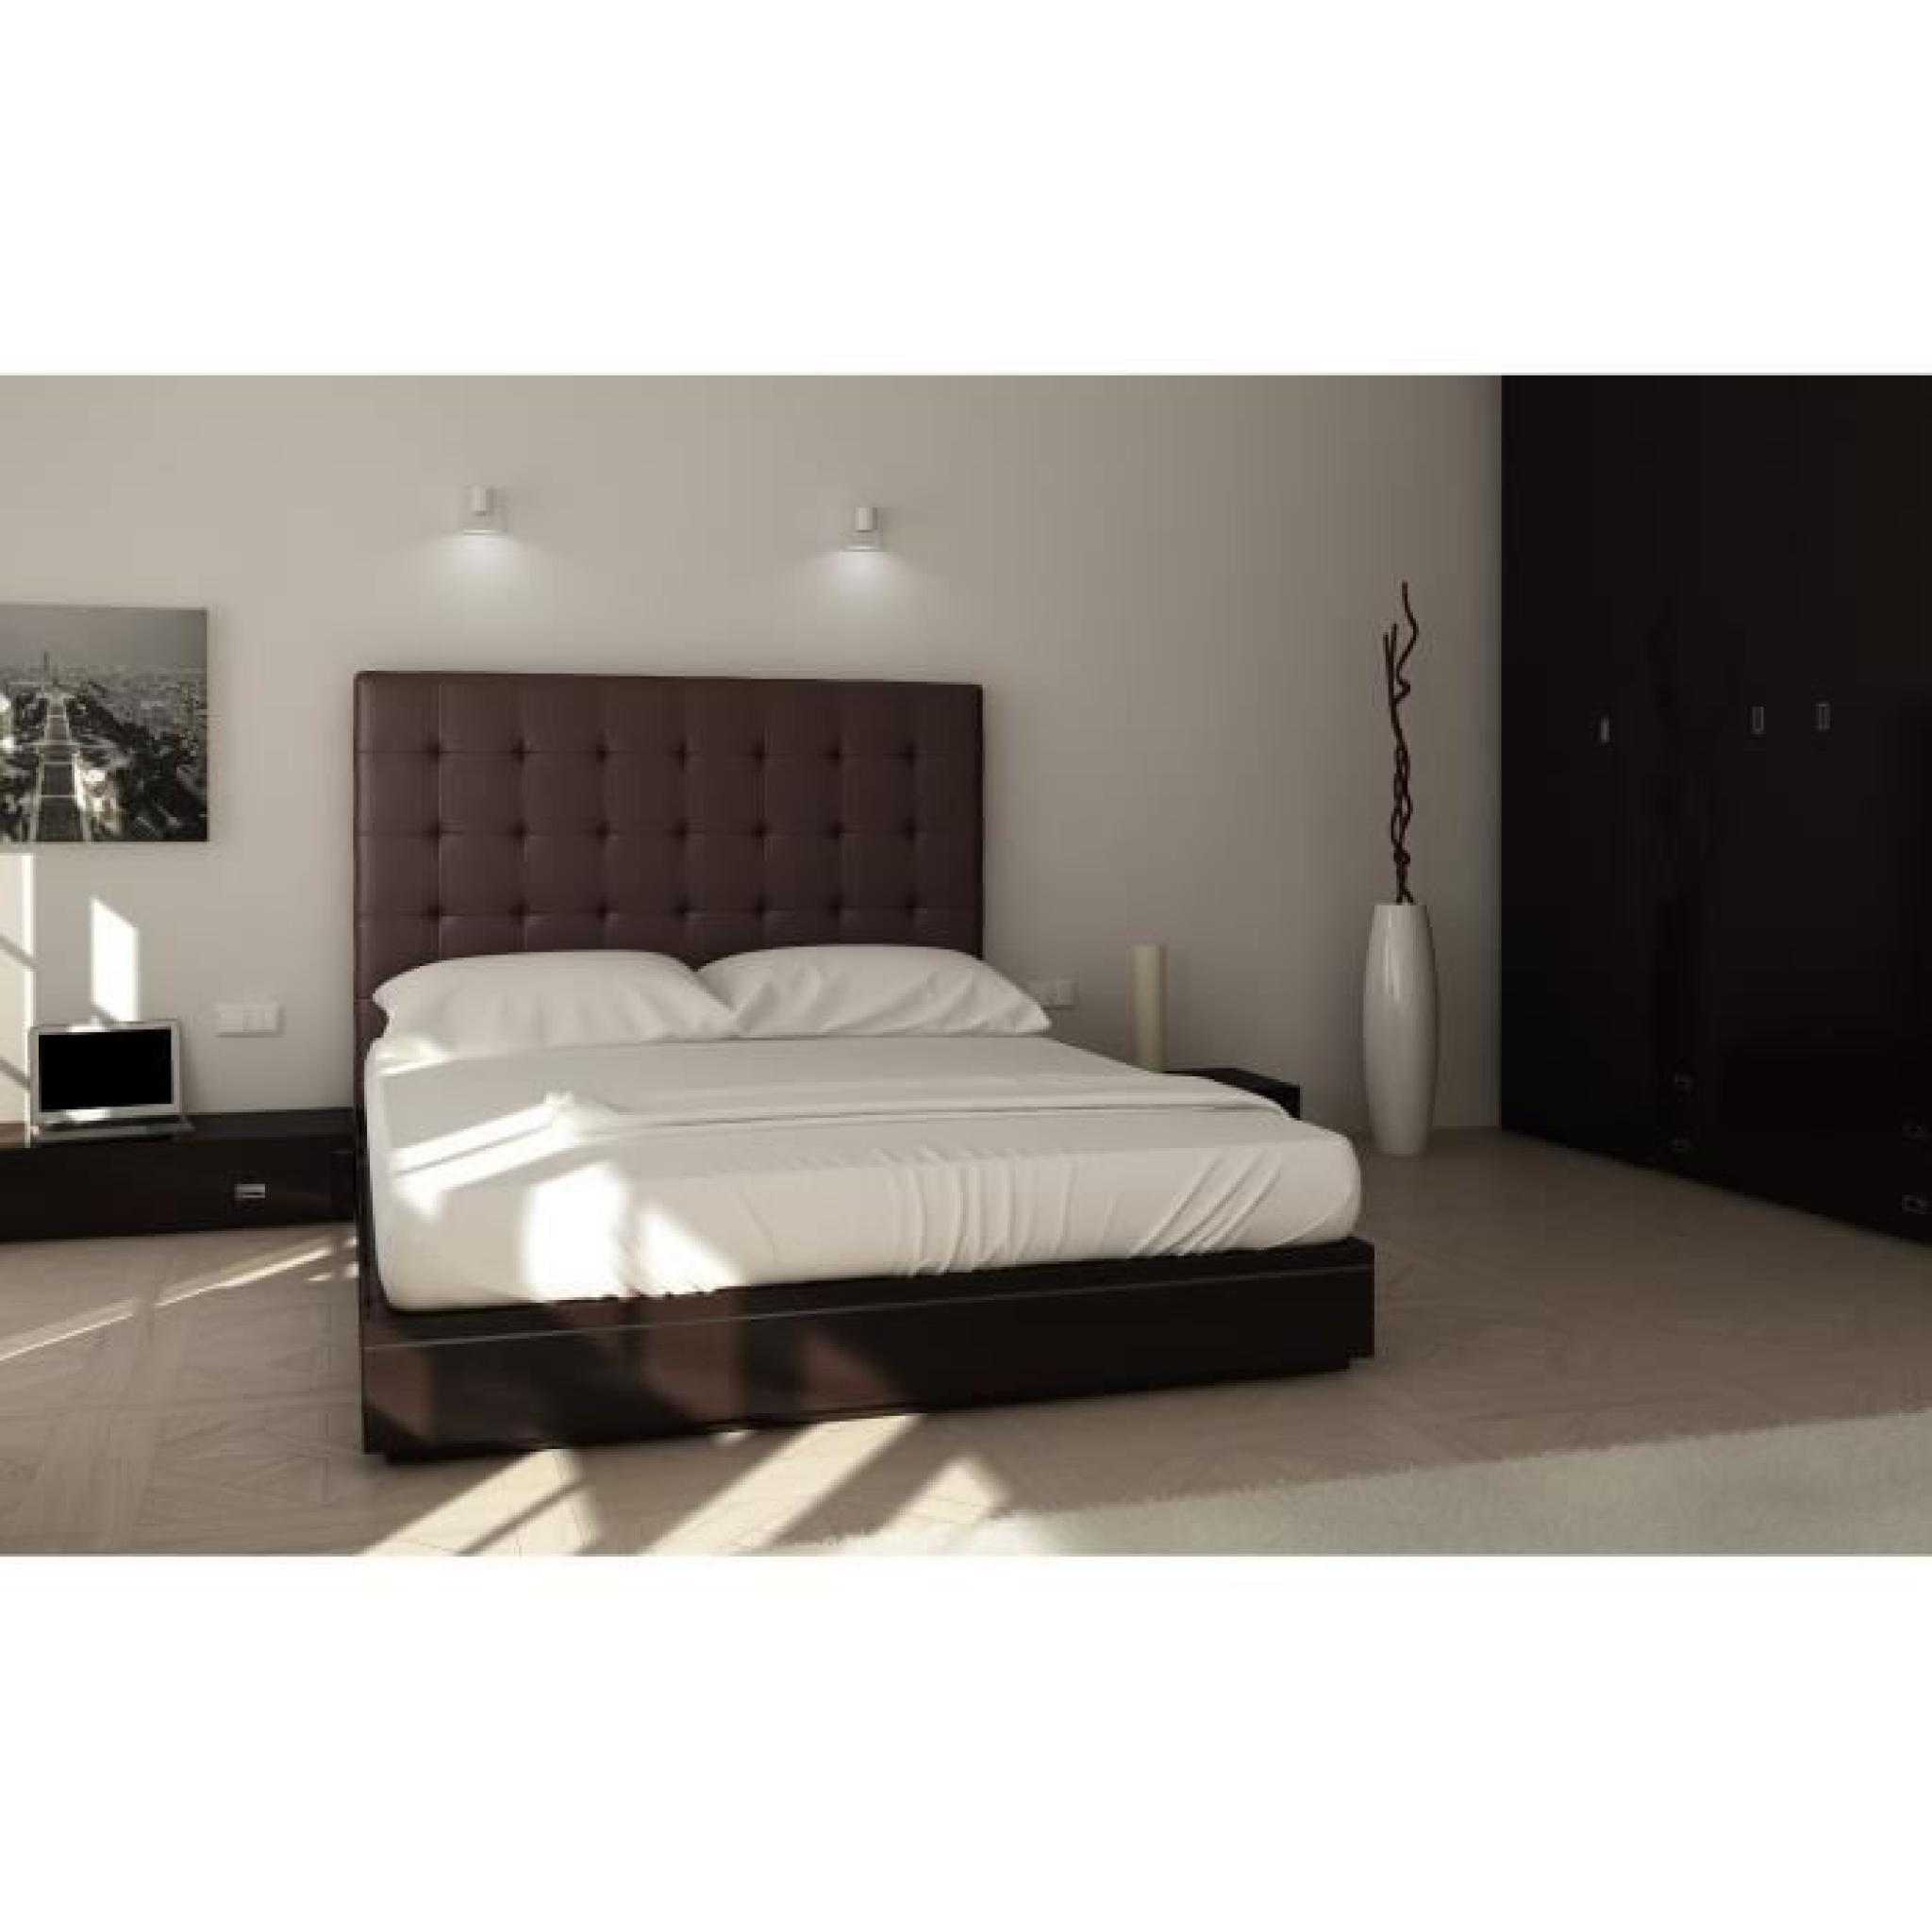 tete de lit capitonnee design 28 images sogno t 234 te. Black Bedroom Furniture Sets. Home Design Ideas